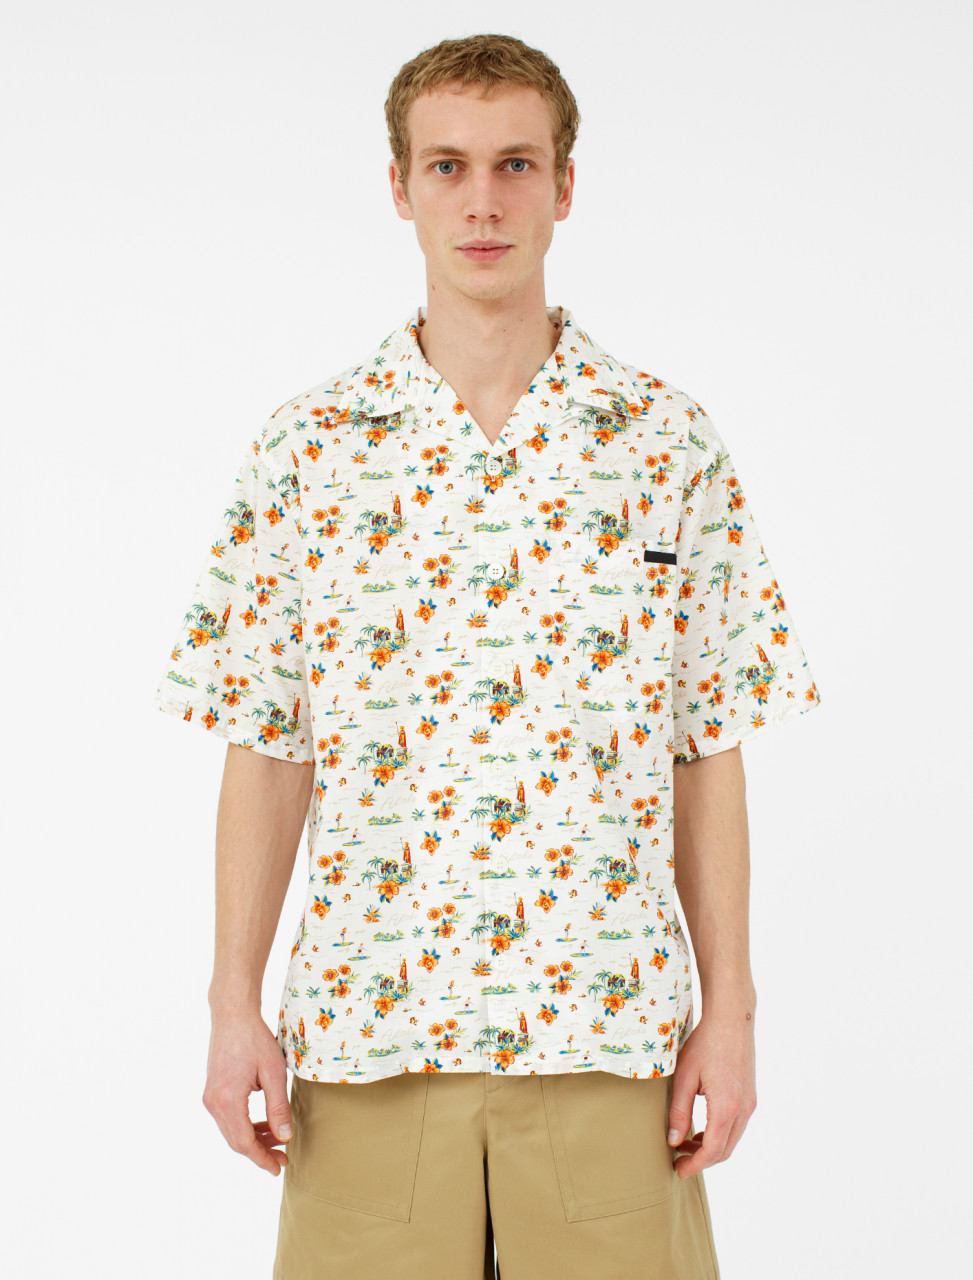 Prada Hawaii Microcomics Poplin Shirt